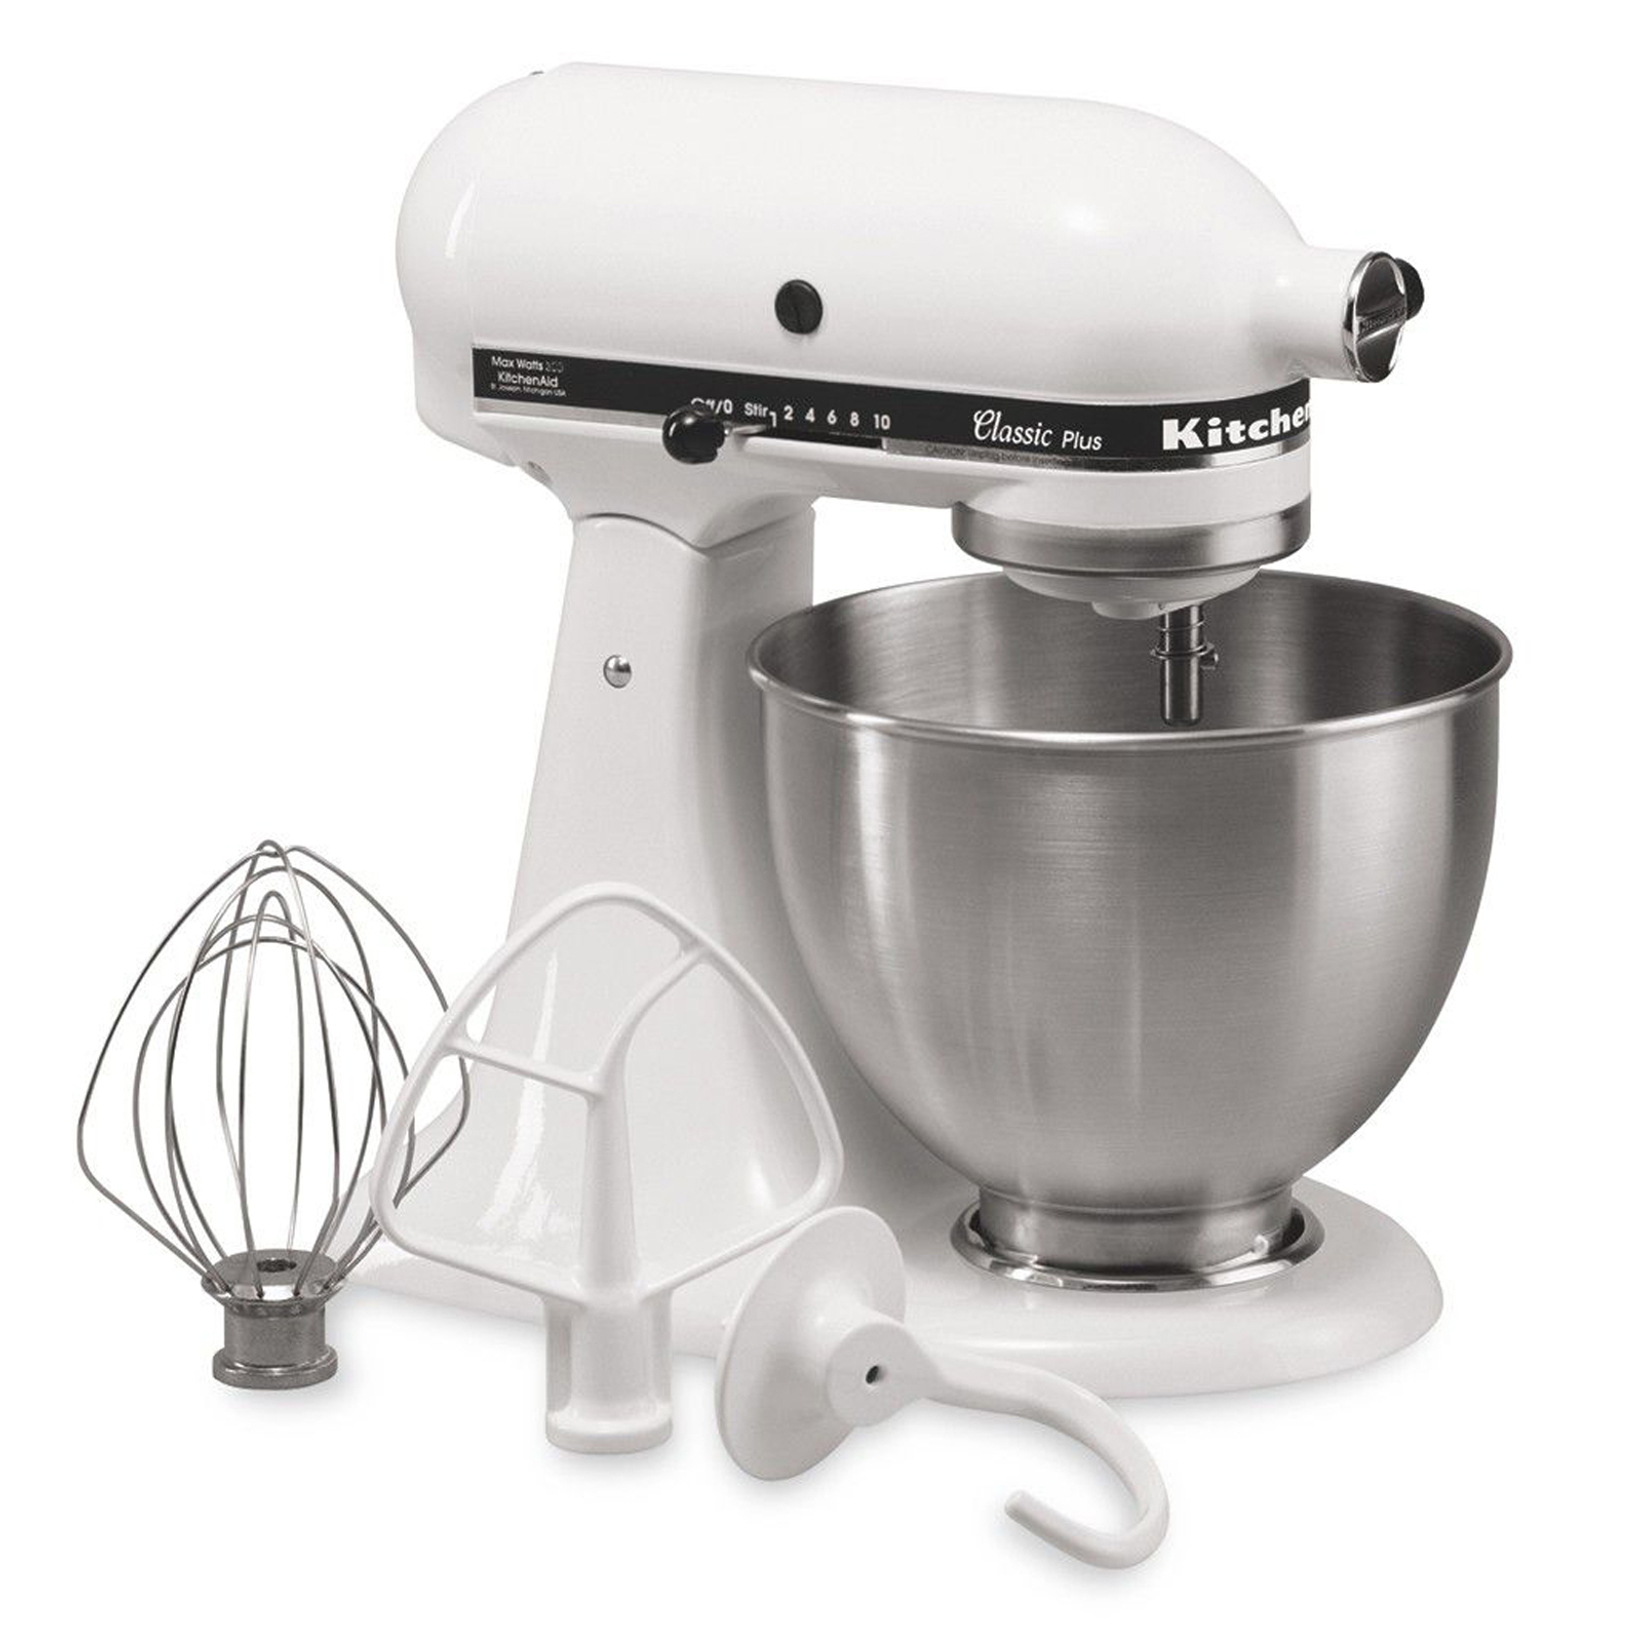 KitchenAid KSM75WH Classic Plus 4.5 Quart Stand Mixer - White